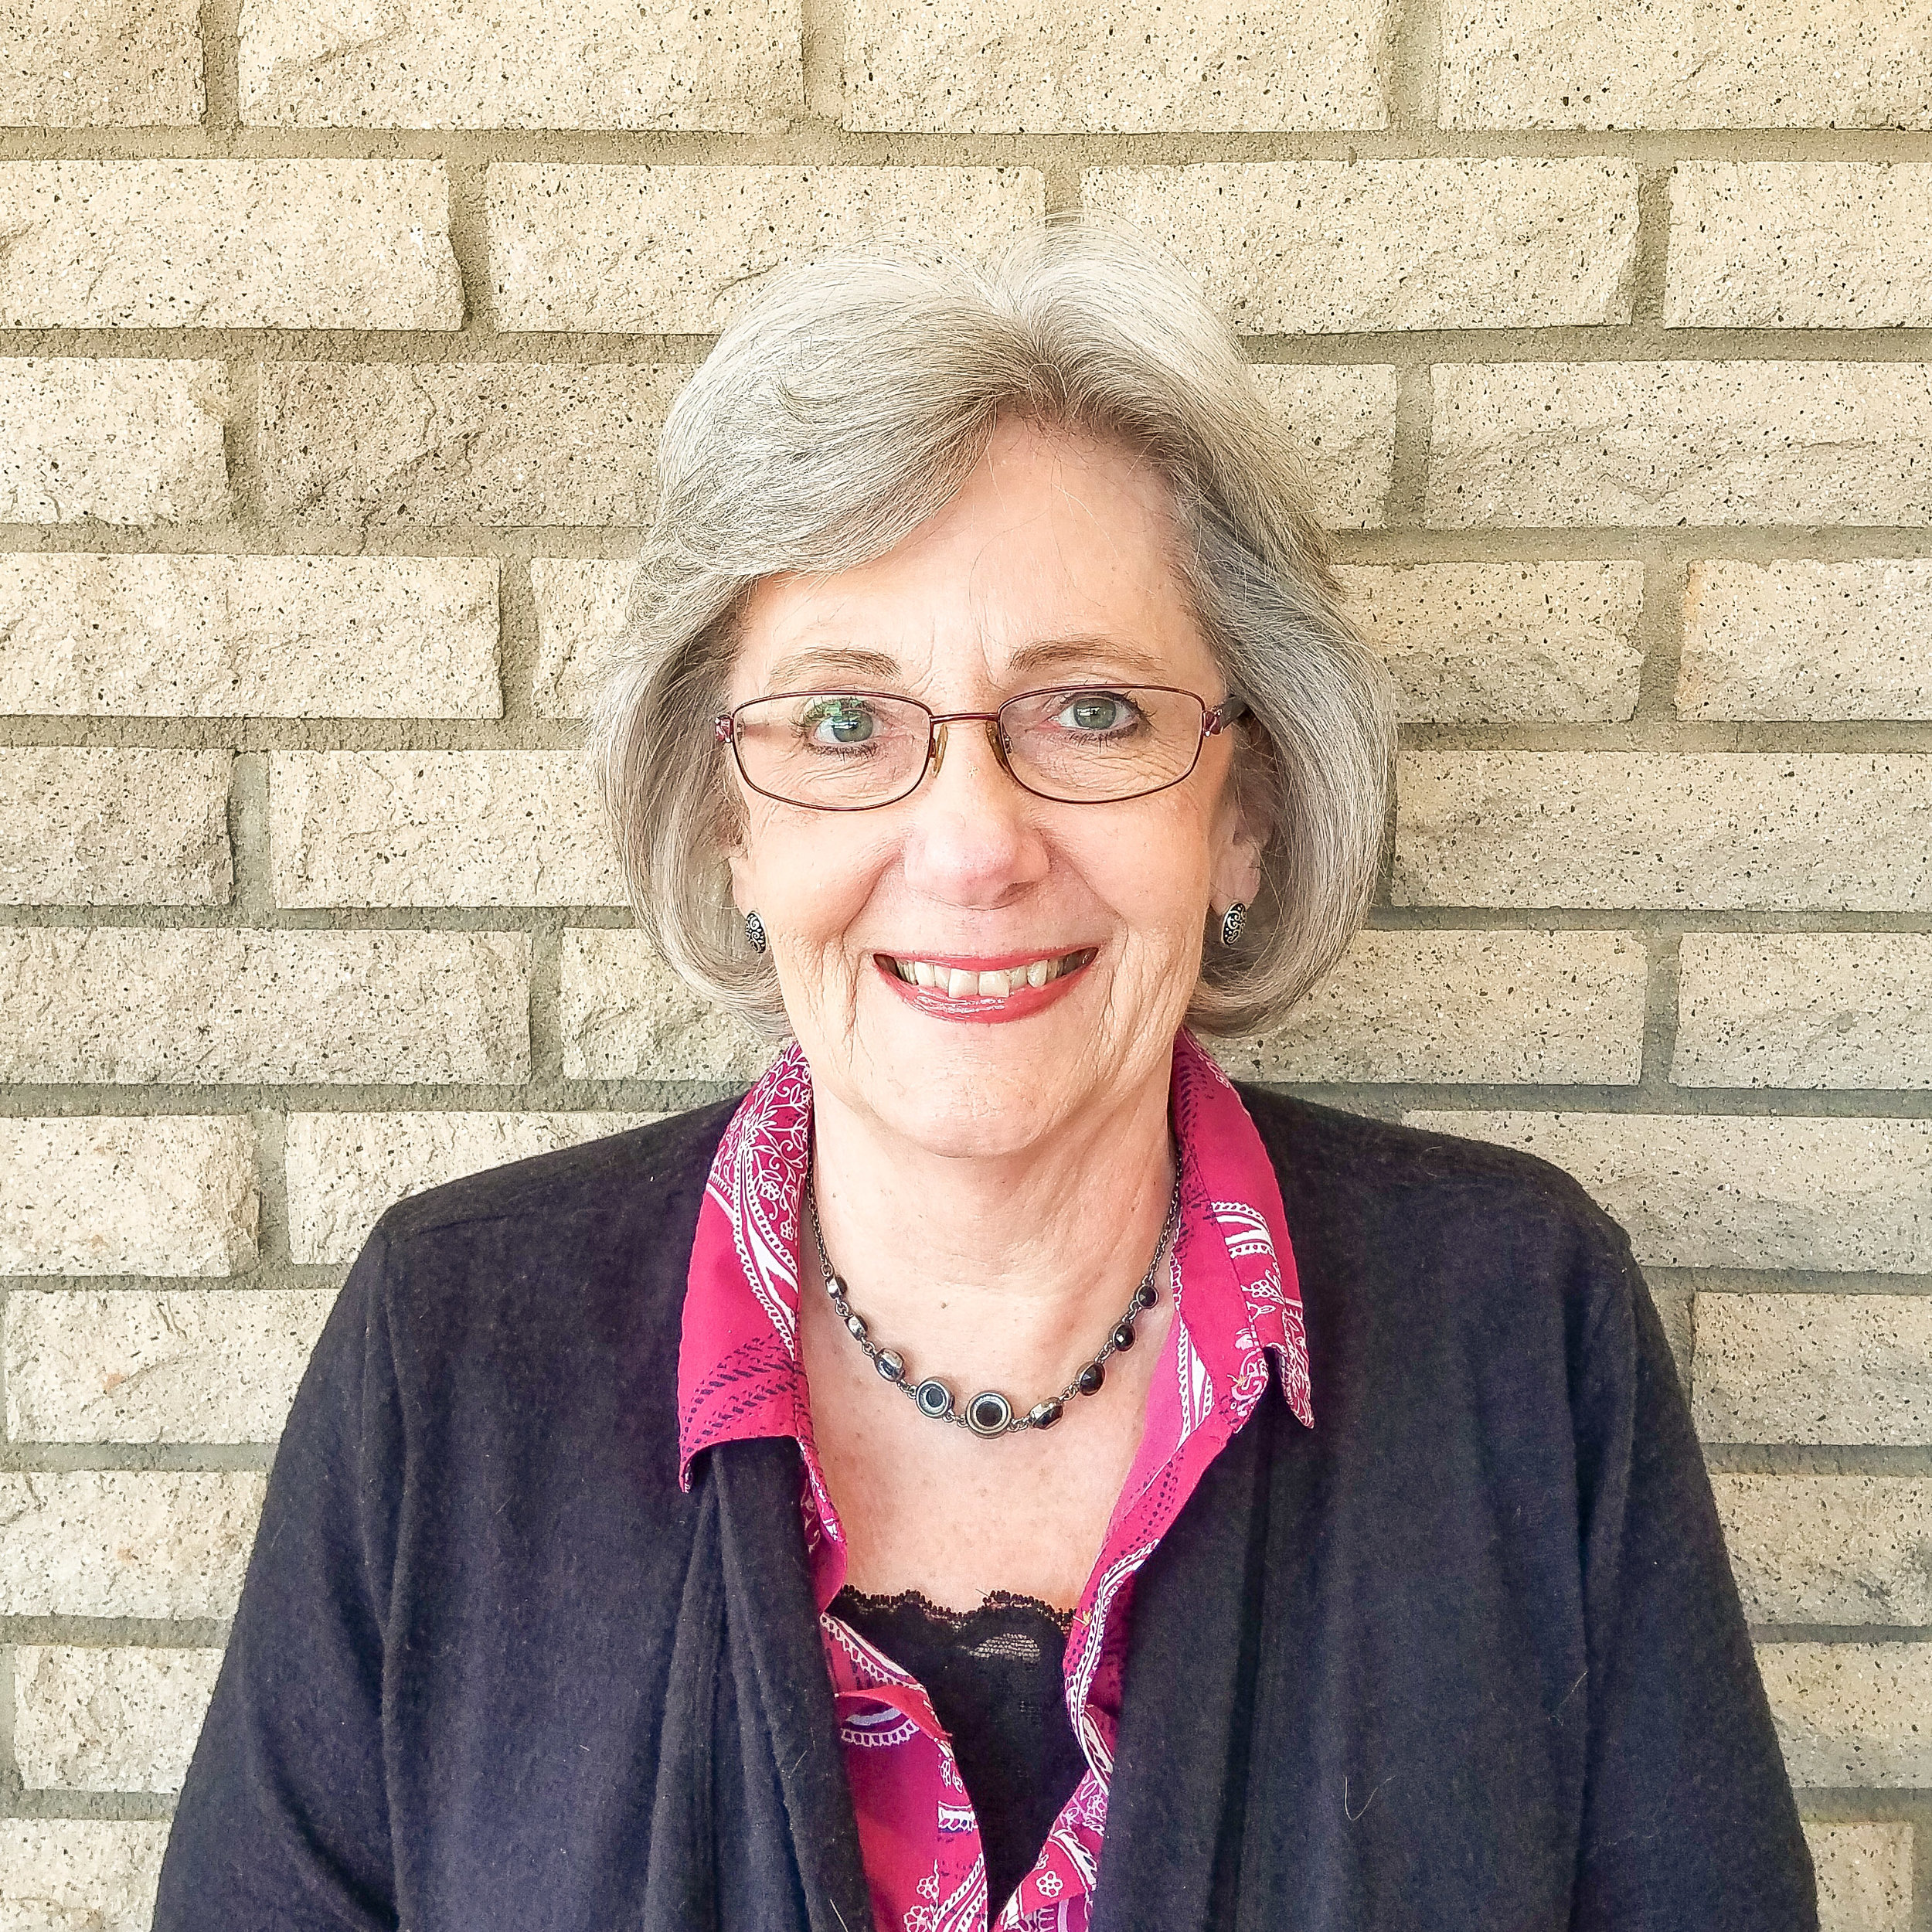 Administrator - Judy Rowe is the one who keeps things organized and running smoothly at All Saints. She does her best to keep the rest of the staff in line. She loves to spend her free time camping in the great outdoors with her husband Mike.EMAILjudy@allsaintsweddington.org